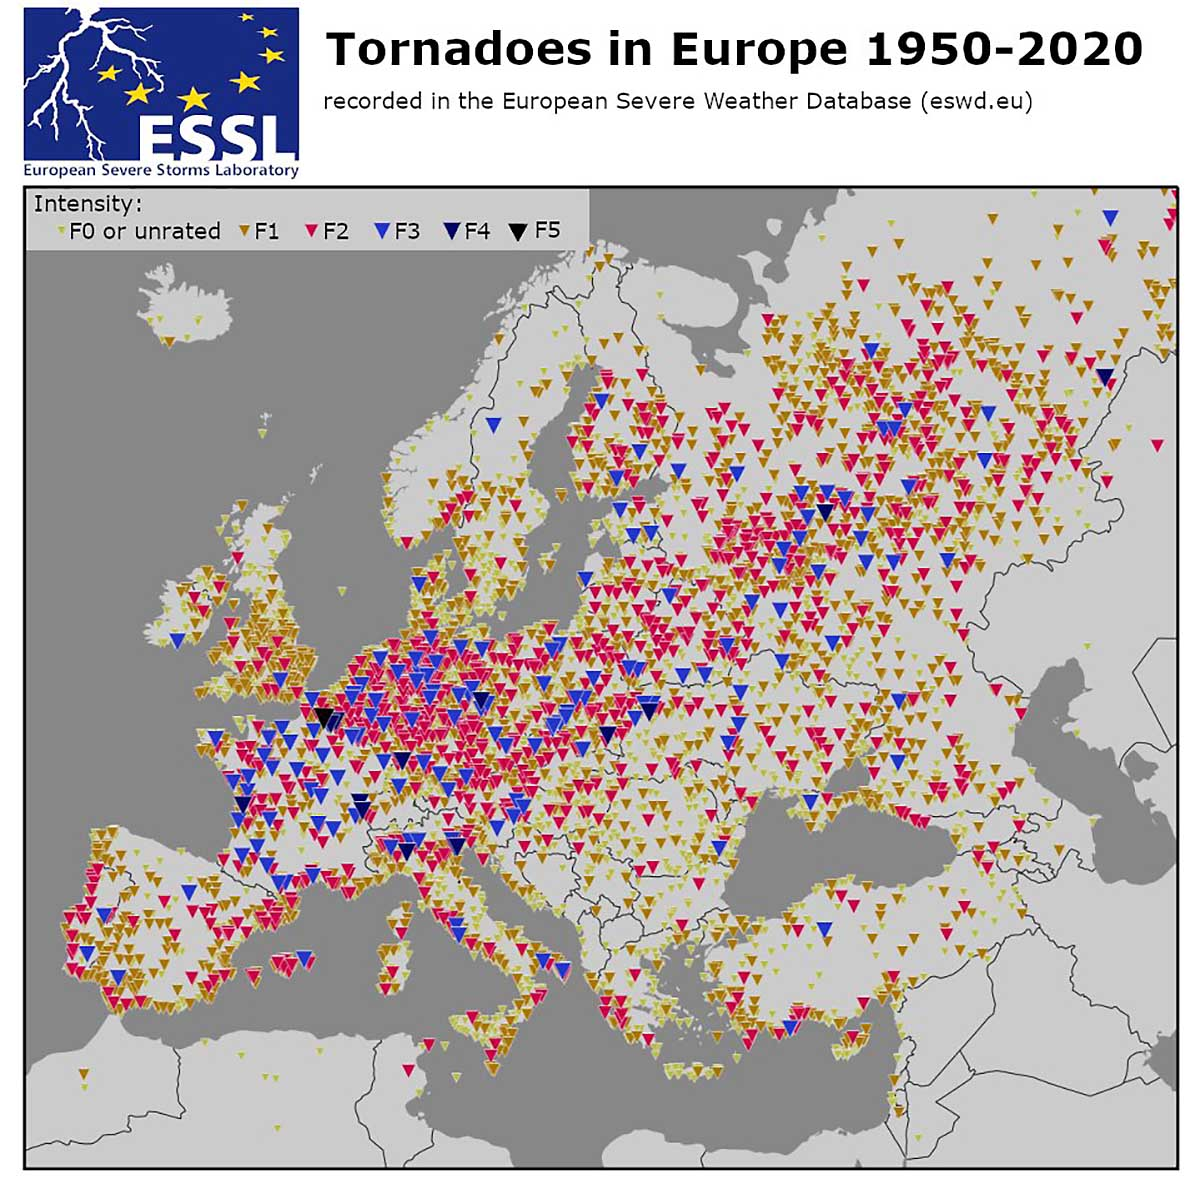 severe-weather-tornado-outbreak-lombardy-italy-europe-statistics